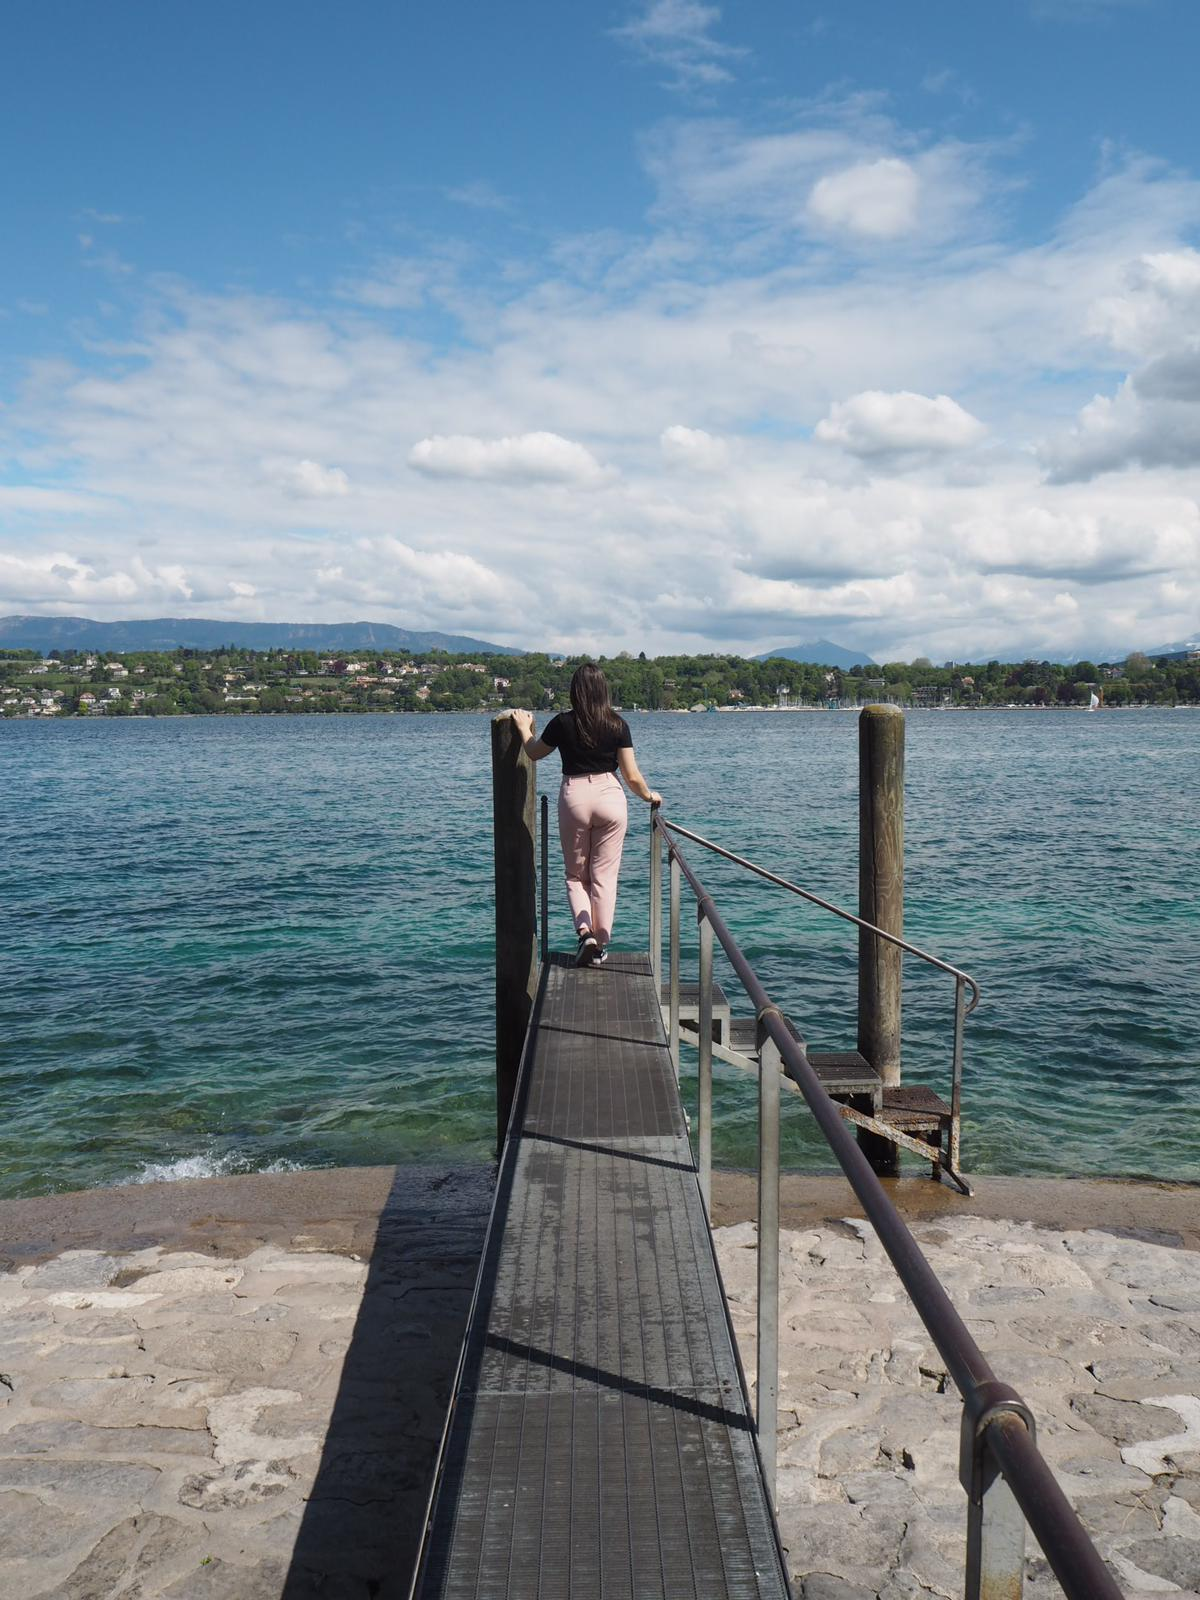 Best Things to Do In Geneva - Parc de La Perle du Lac